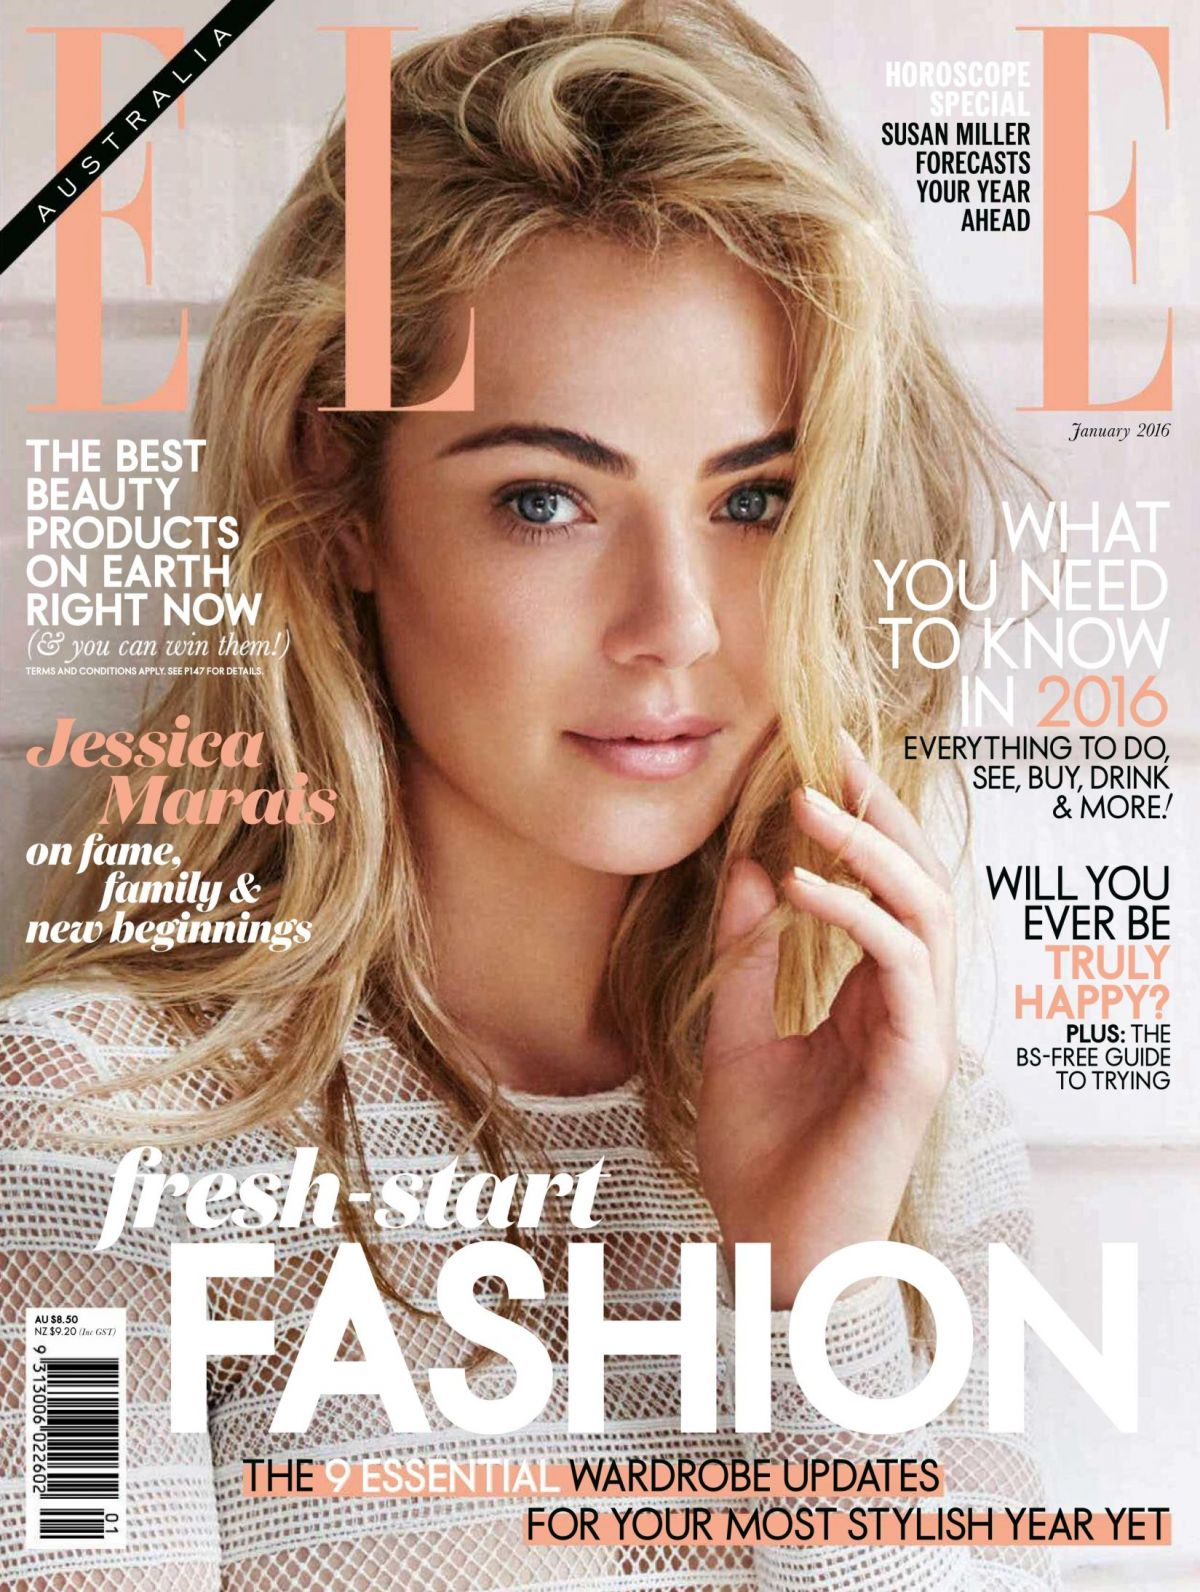 JESSICA MARAIS in Elle Magazine, Australia January 2016 Issue